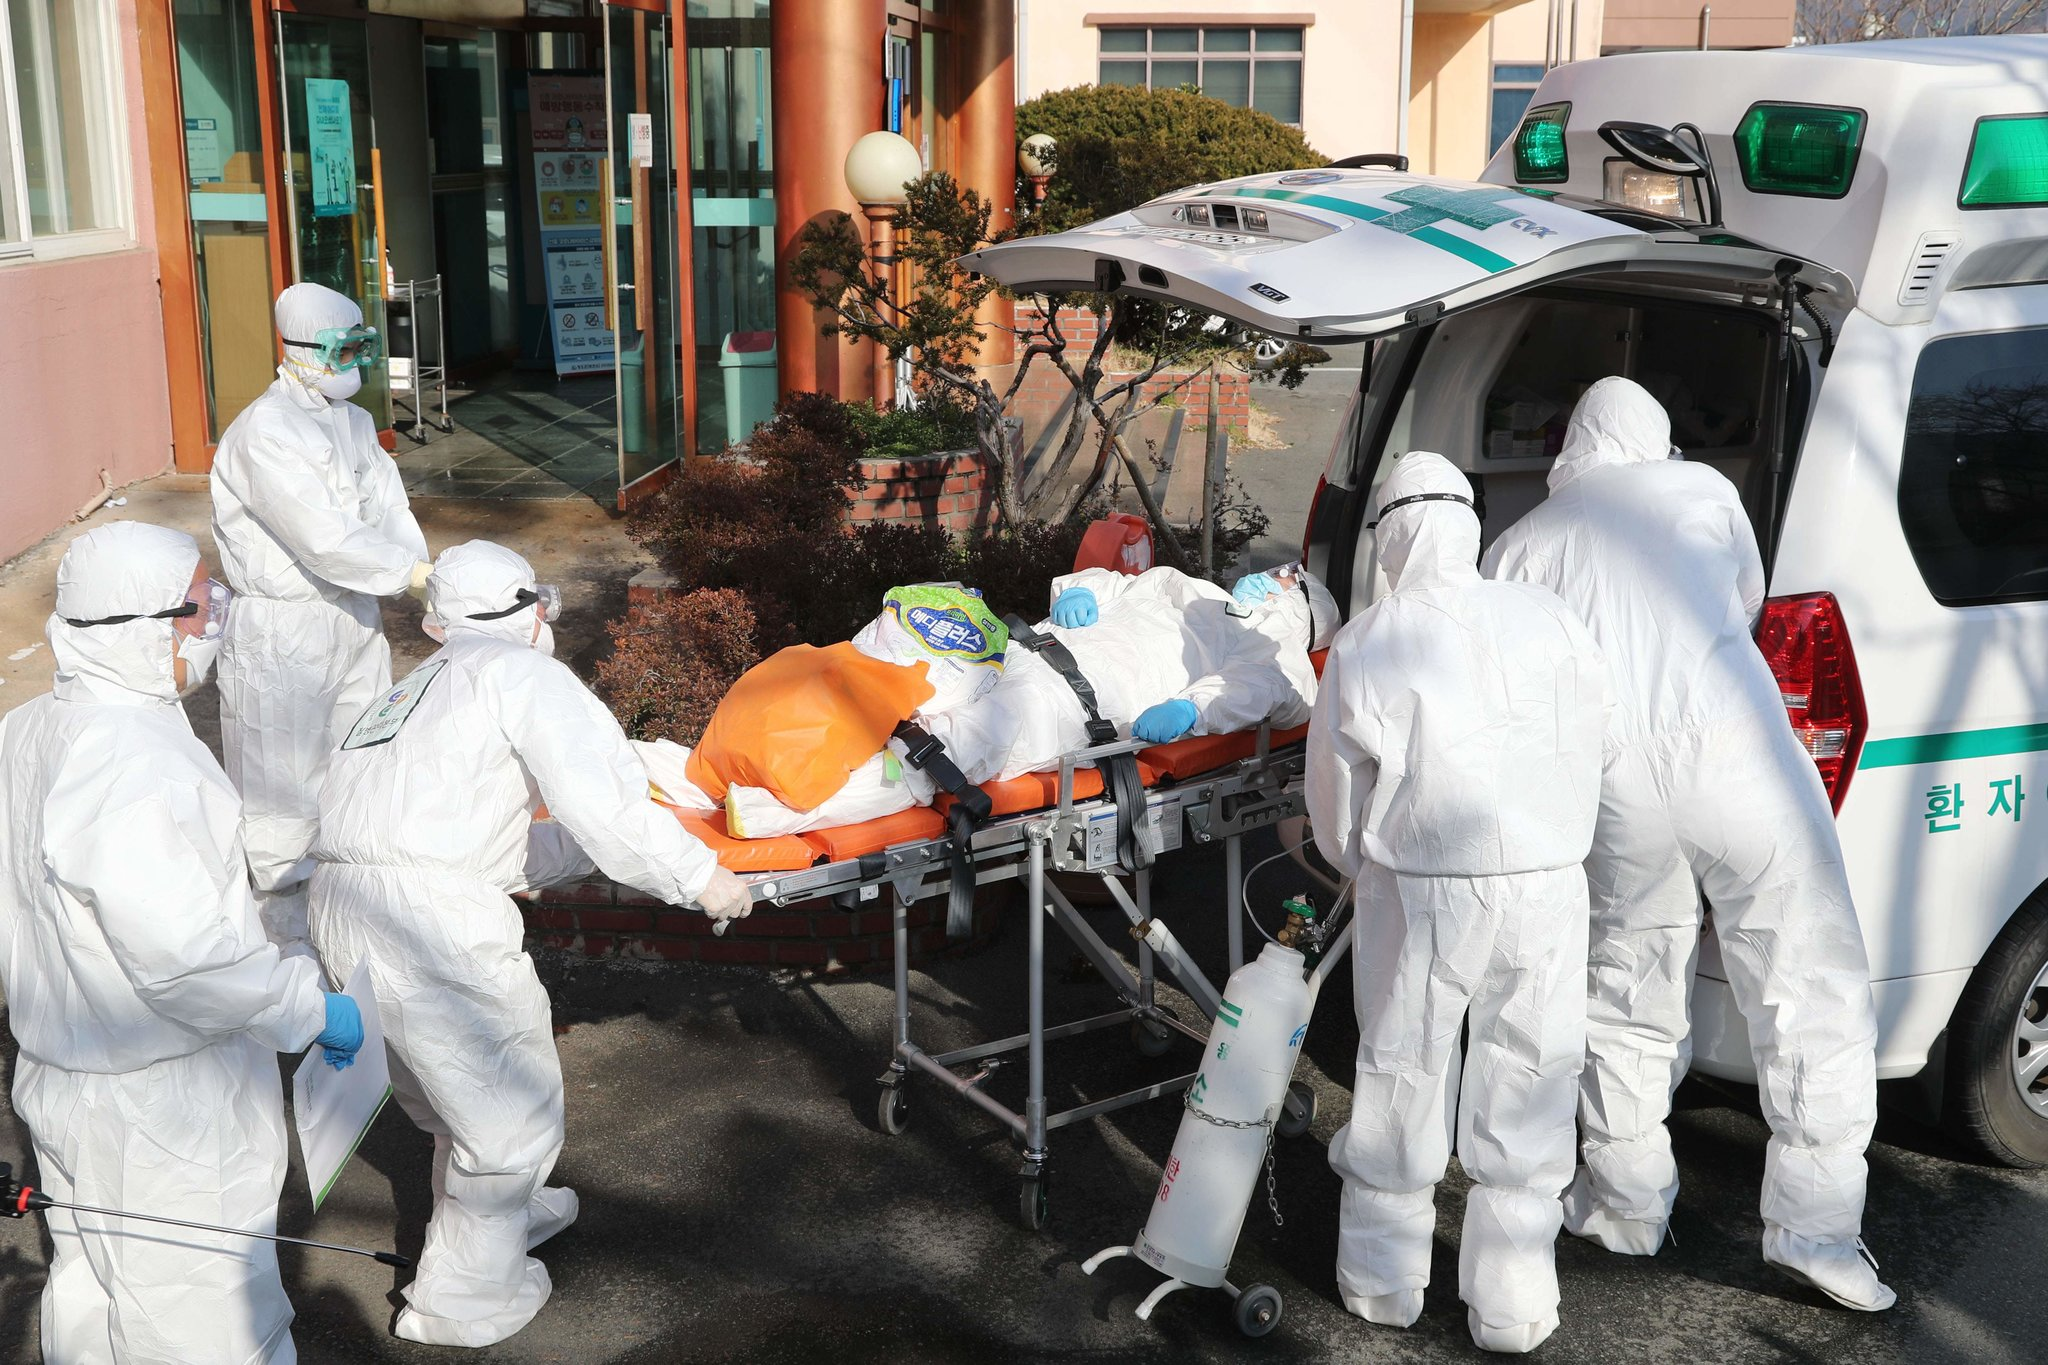 Coronavirus Spreads as New Cases Double in South Korea - The New ...